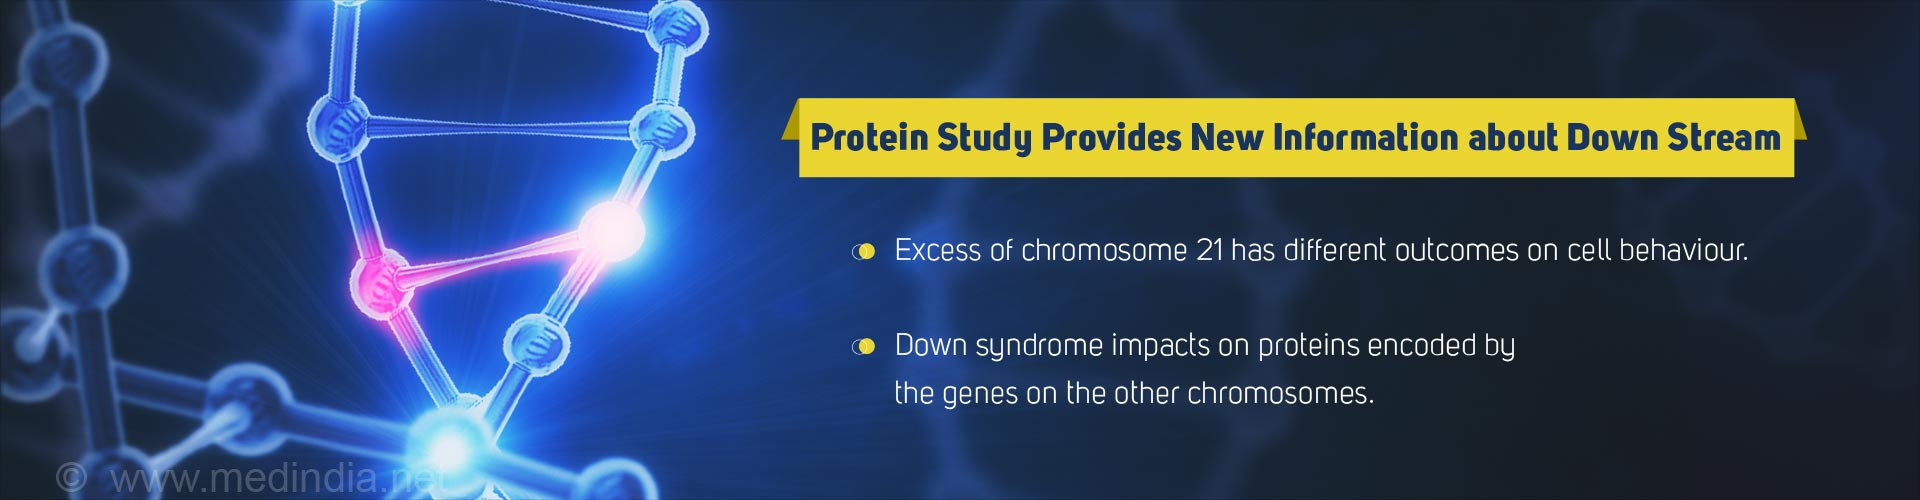 Protein Study Provides New Information About Down Syndrome